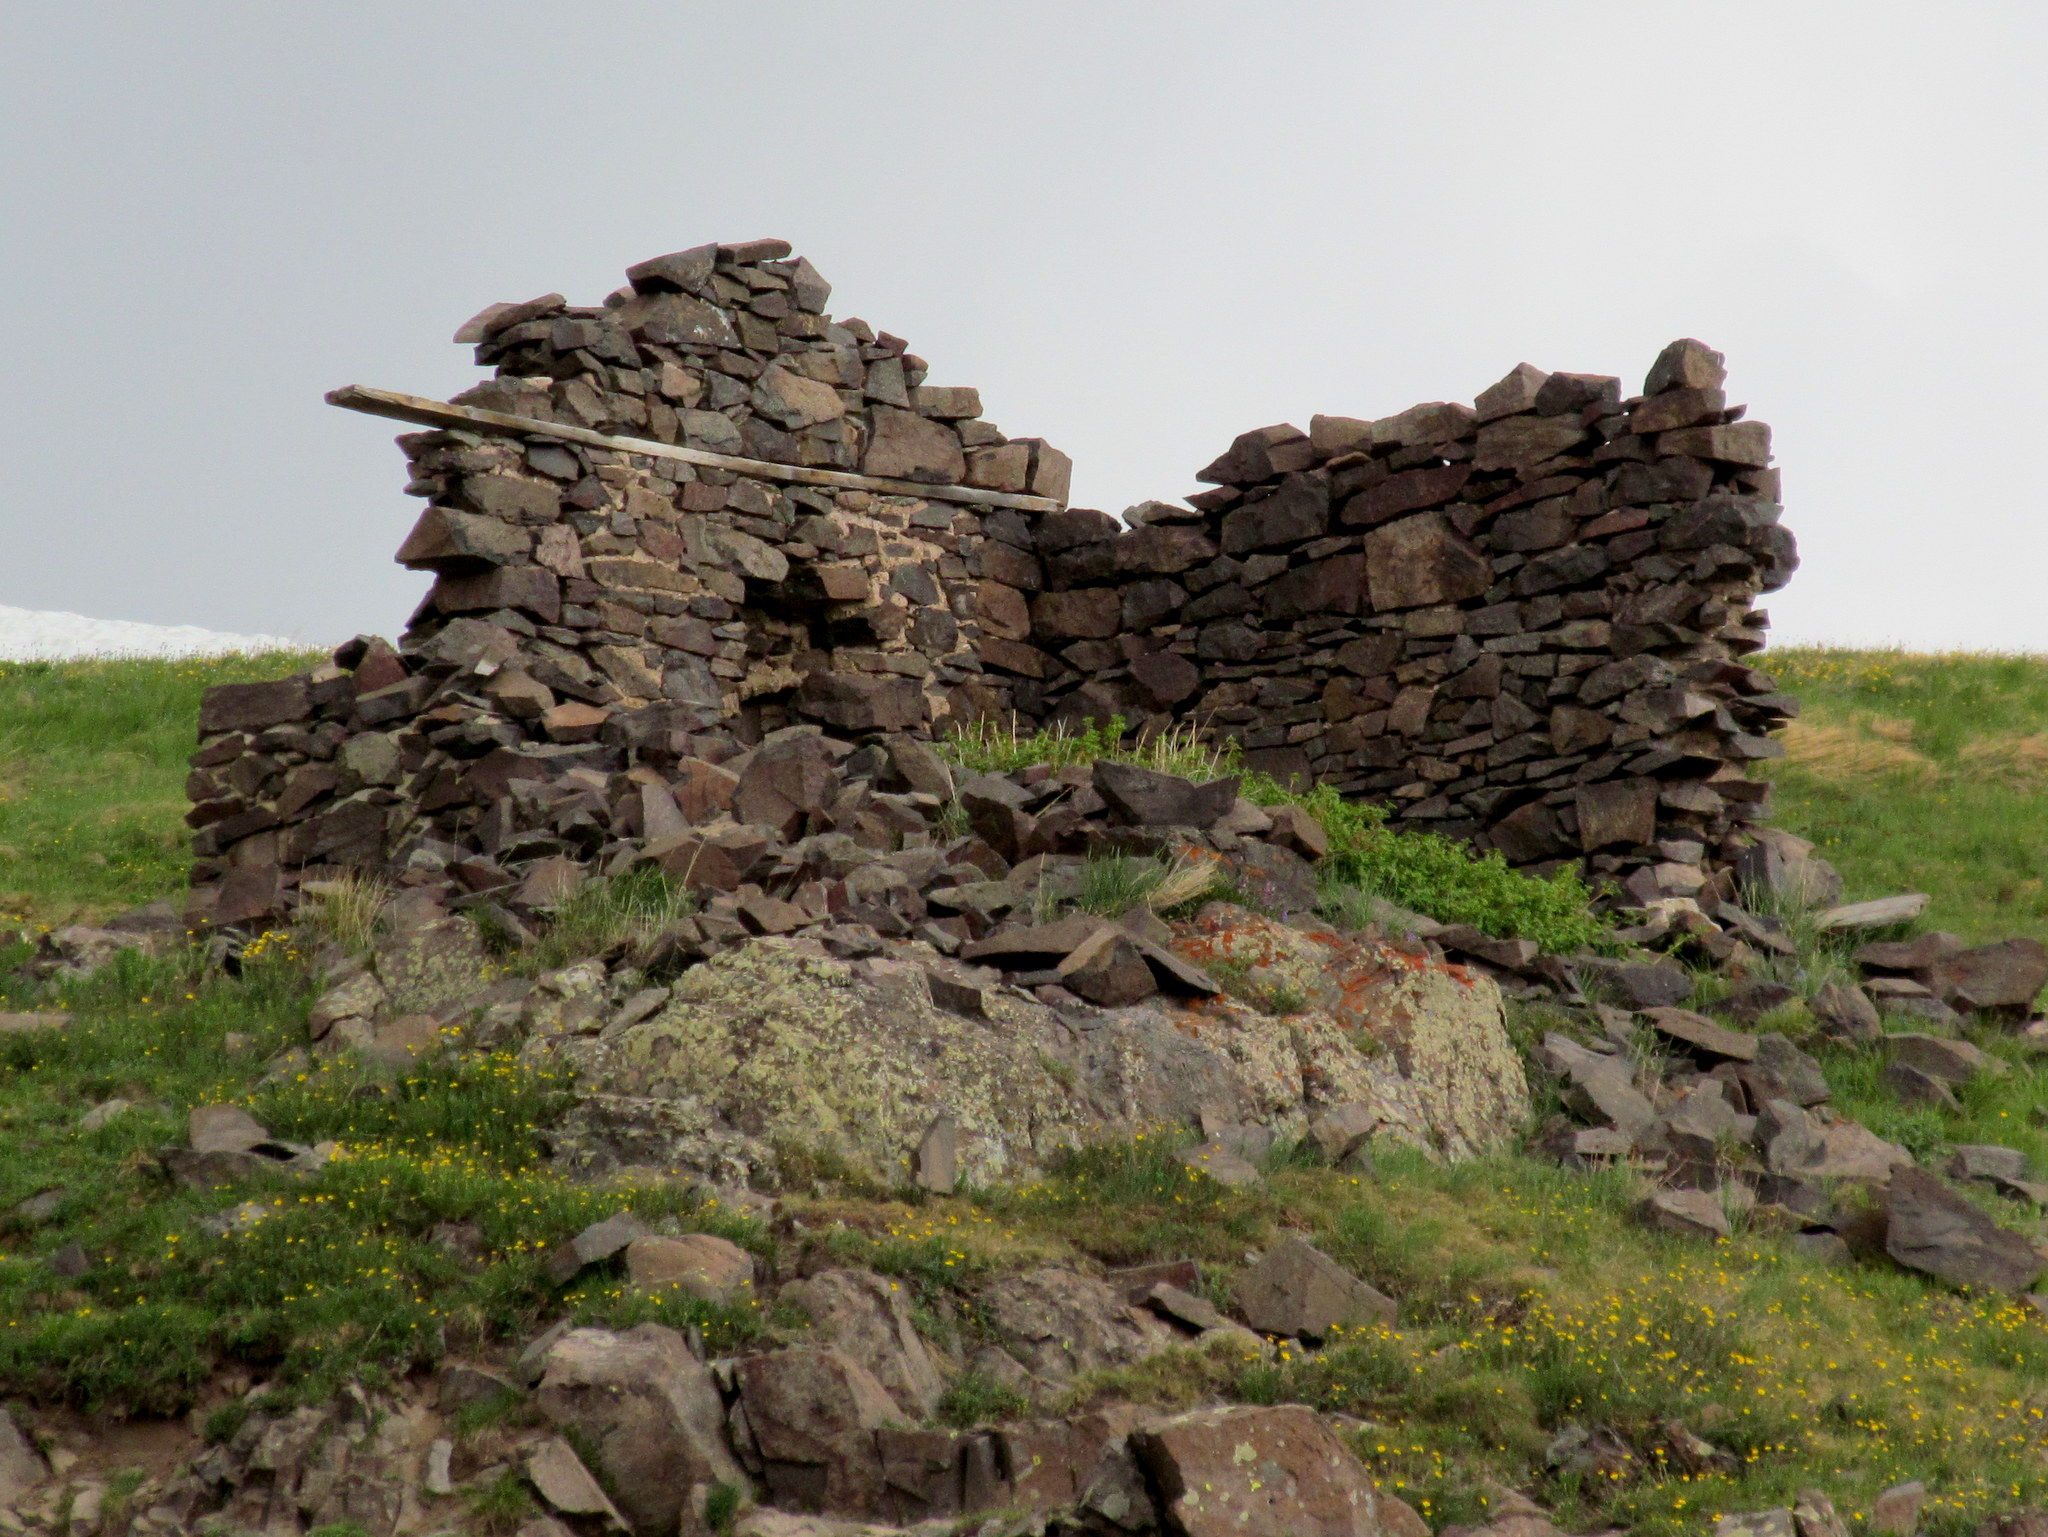 Photo: Ruined stone cabin